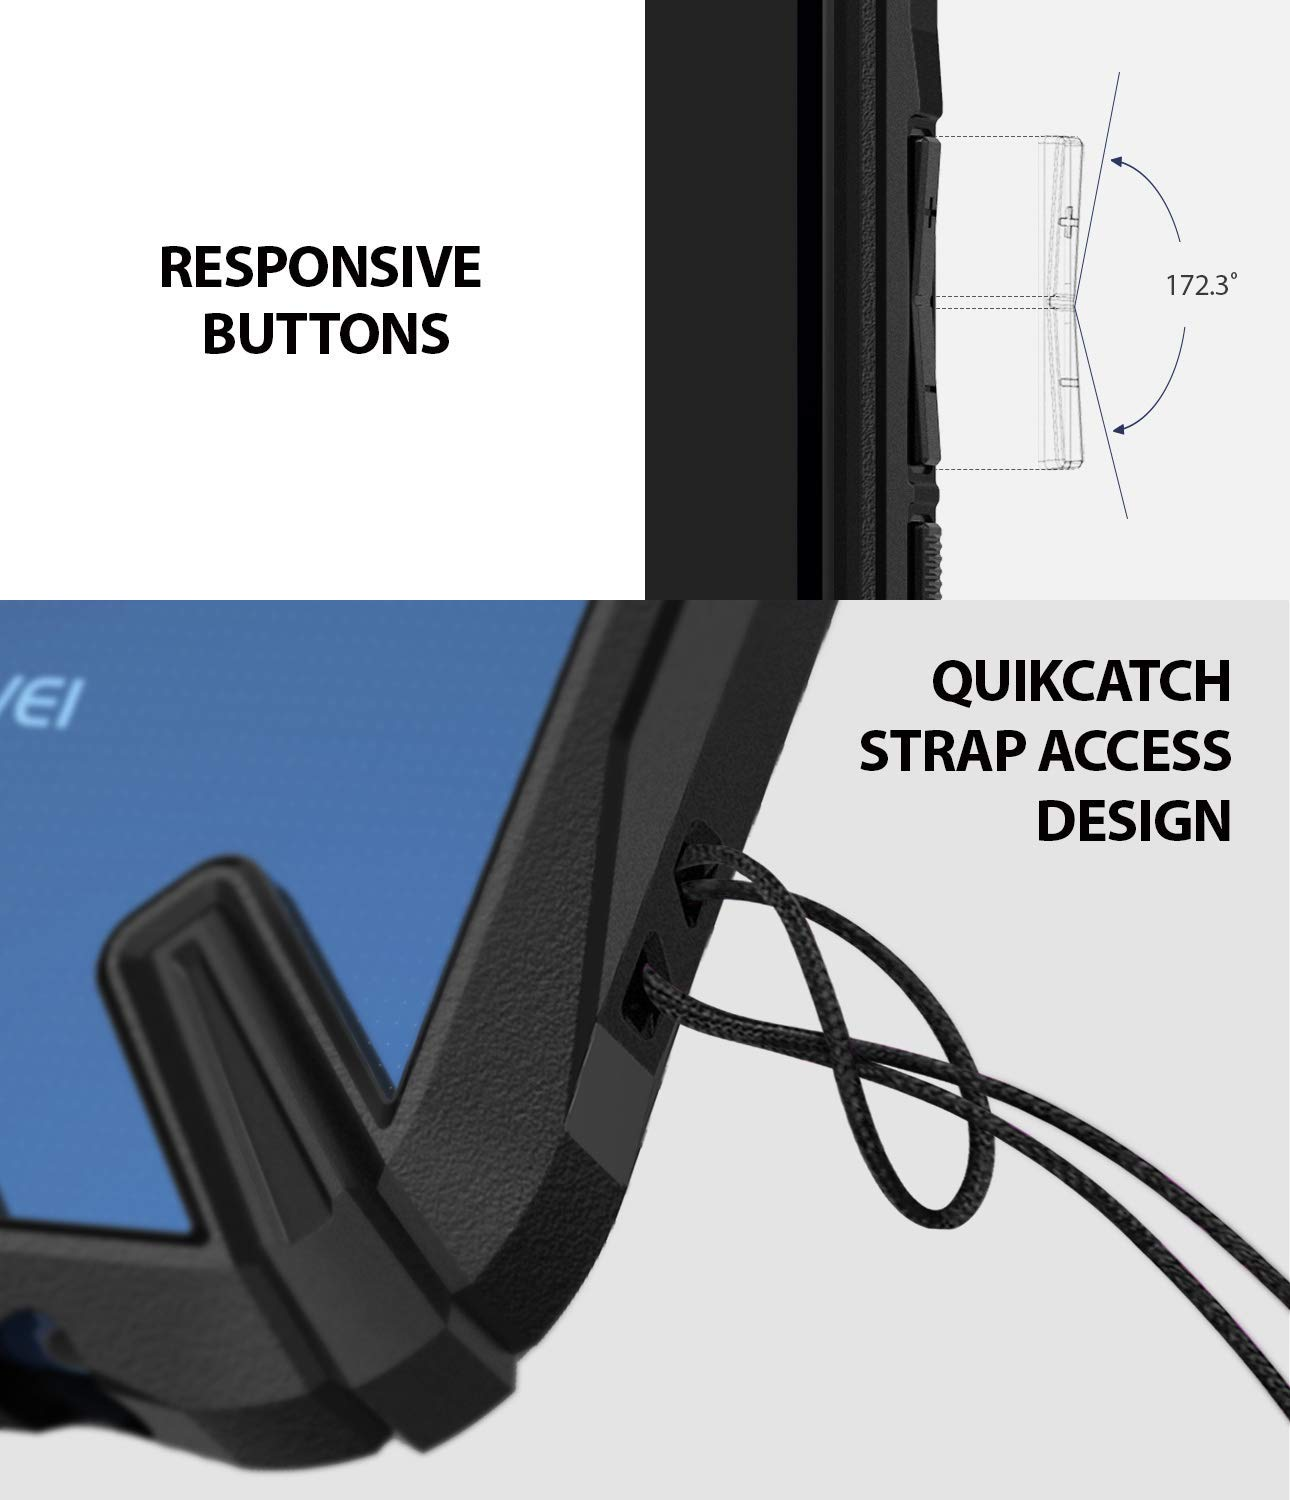 responsive buttons with quikcatch lanyard hole to attach additional accessories